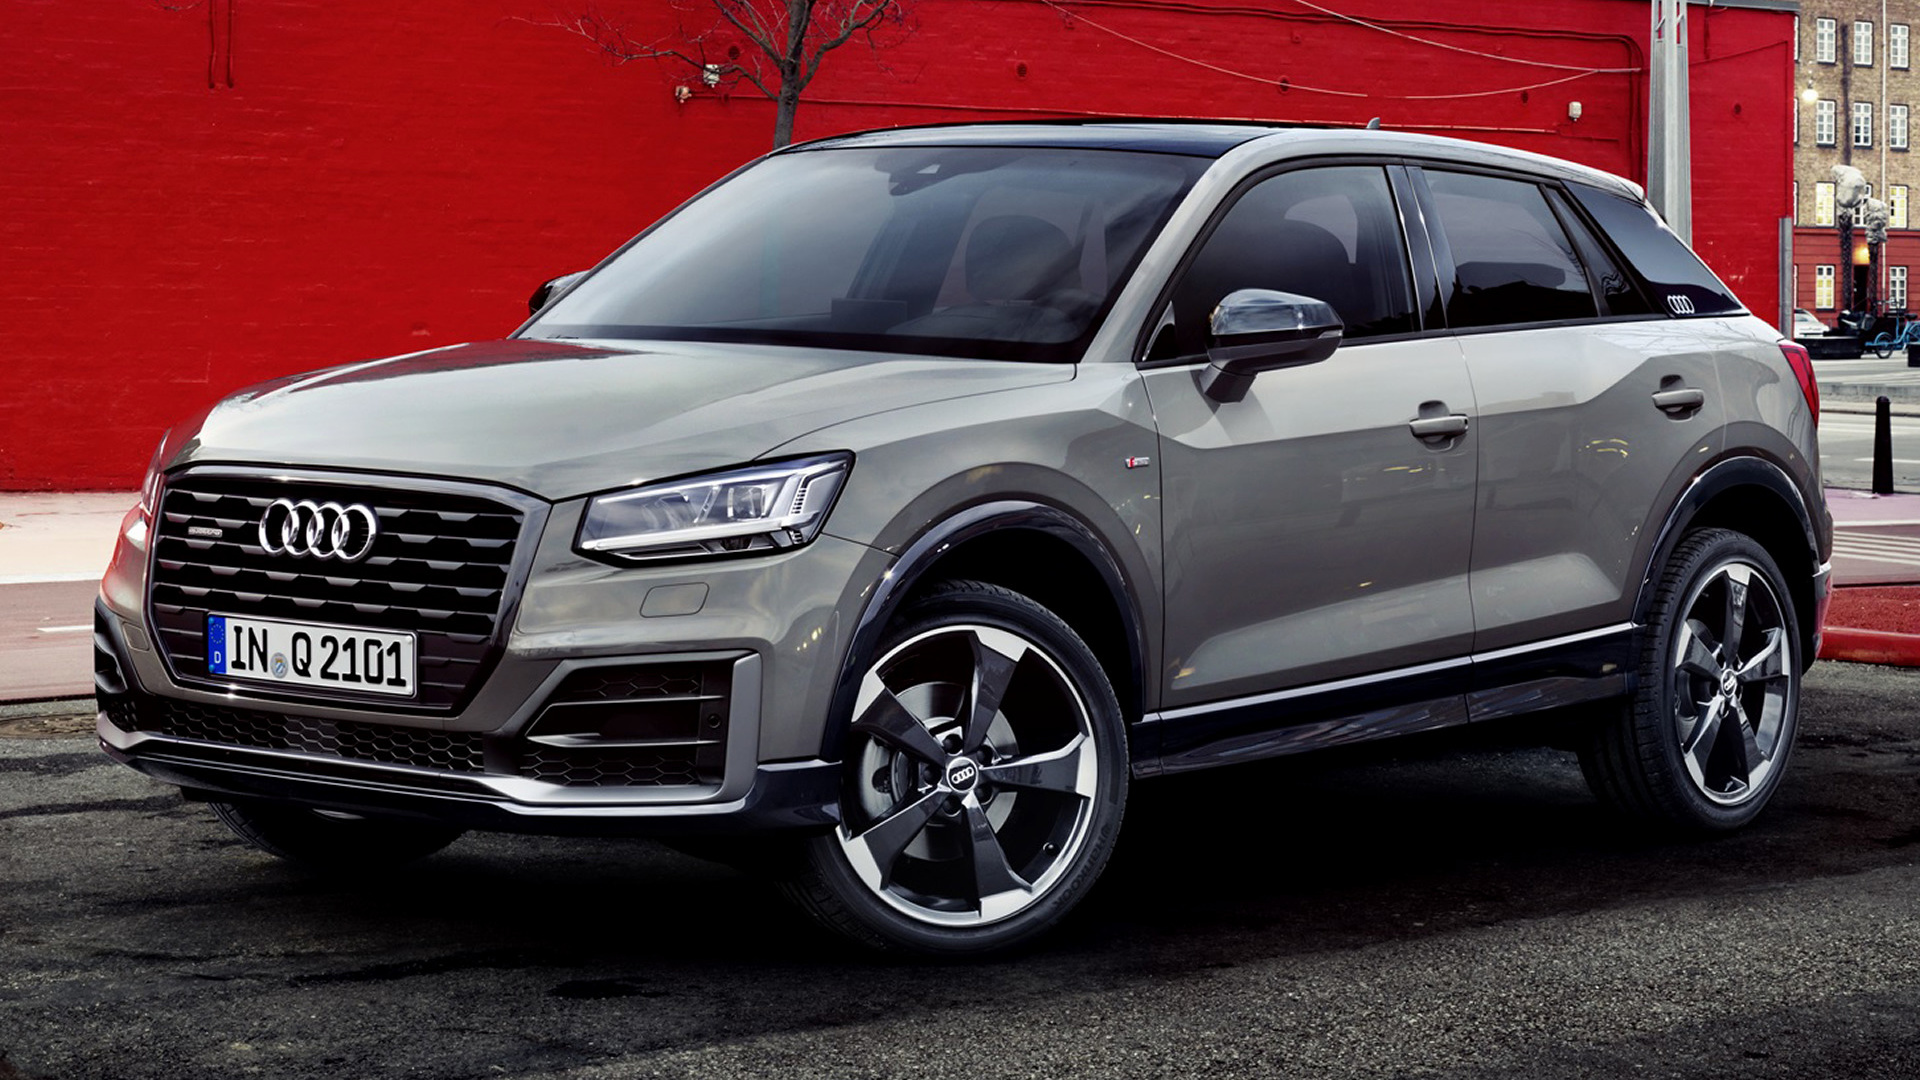 2016 Audi Q2 Edition #1 - Wallpapers and HD Images | Car Pixel